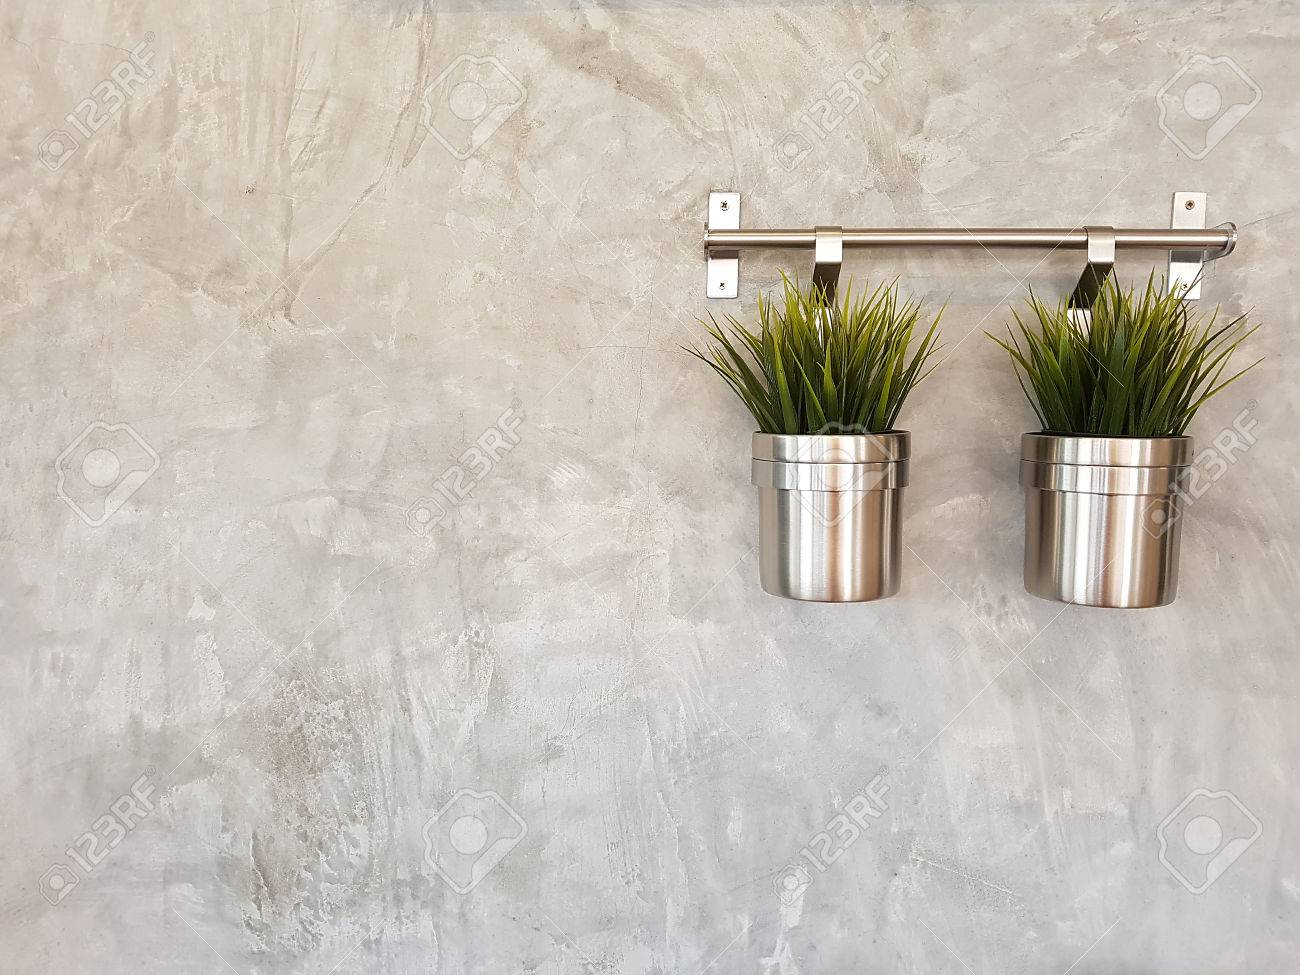 Plant In Stainless Pots Hang On Concrete Wall Stock Photo Picture